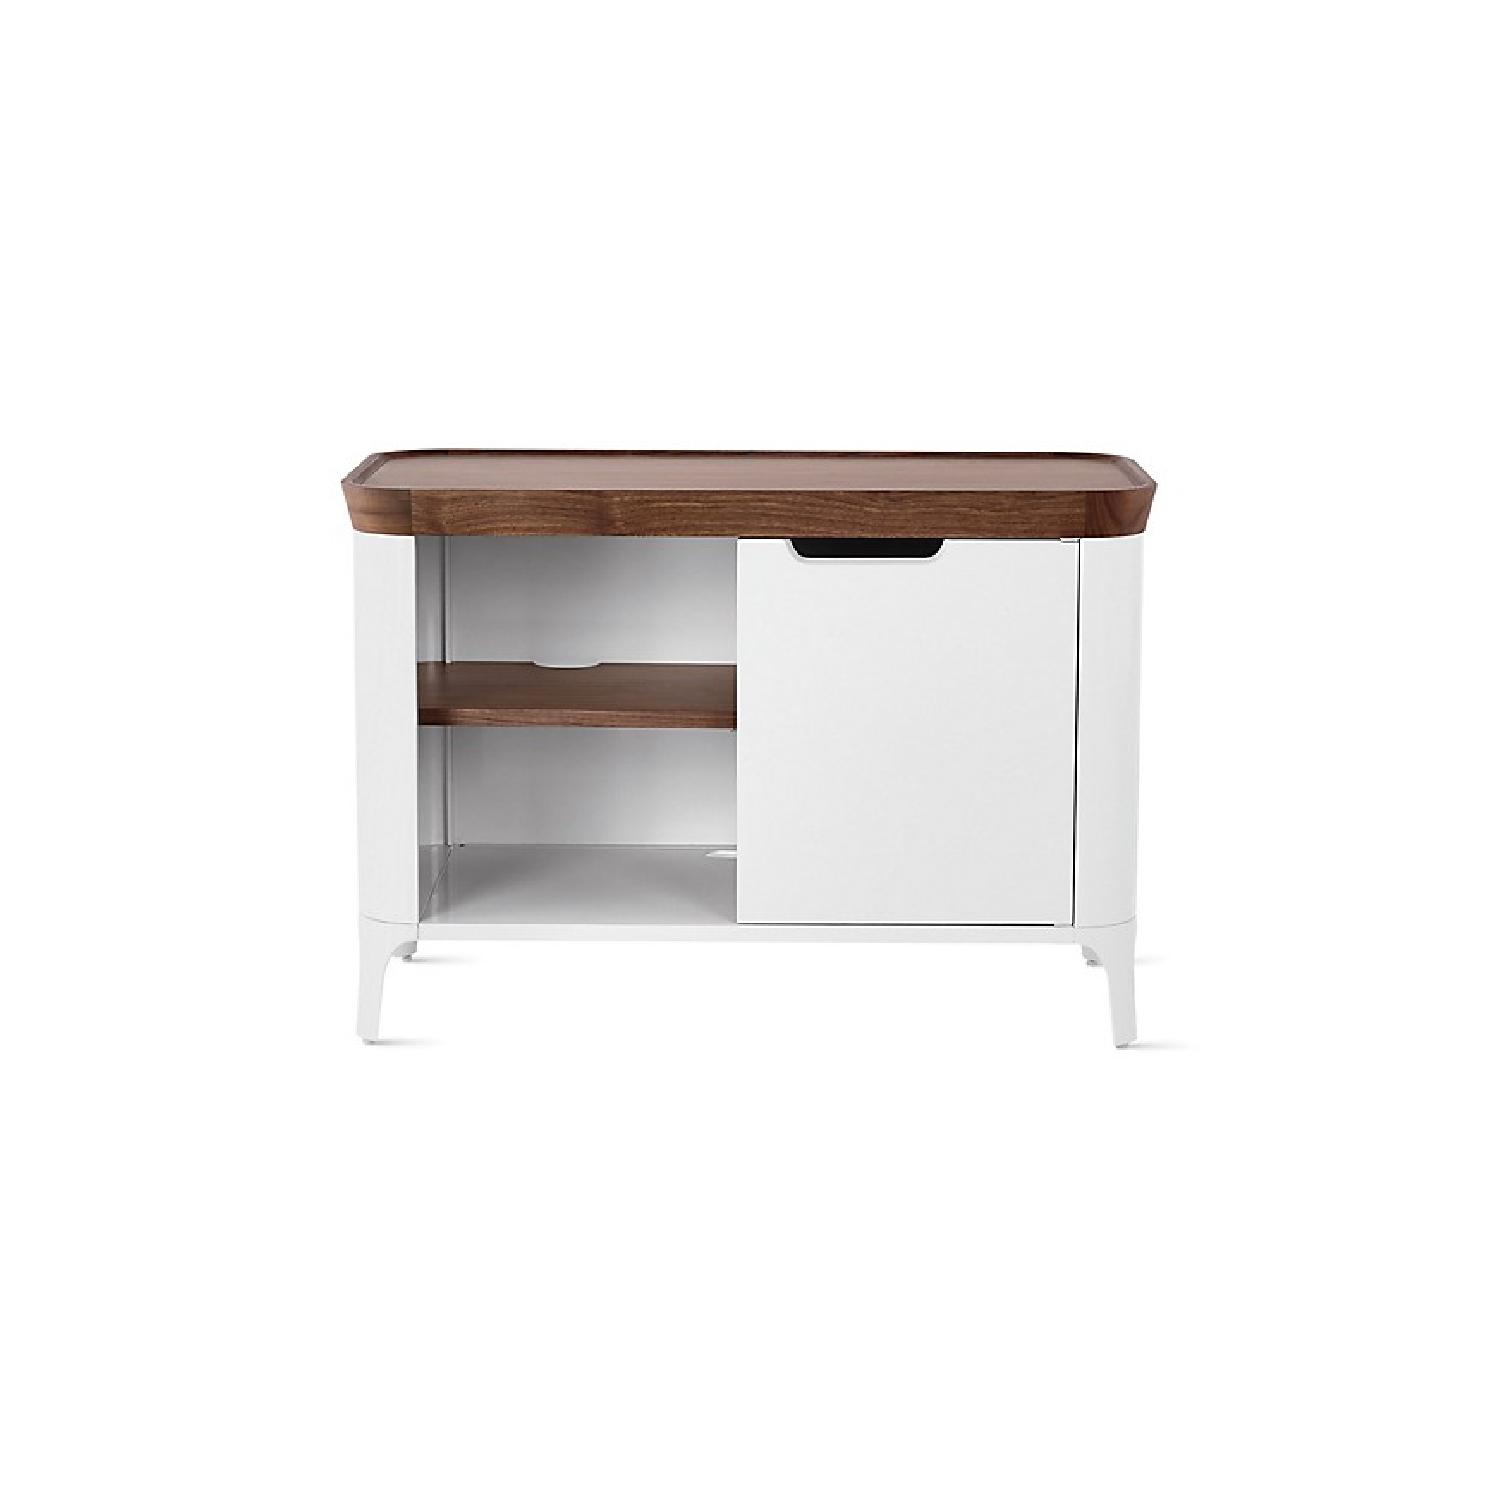 Design within Reach Herman Miller Airia Media Cabinet